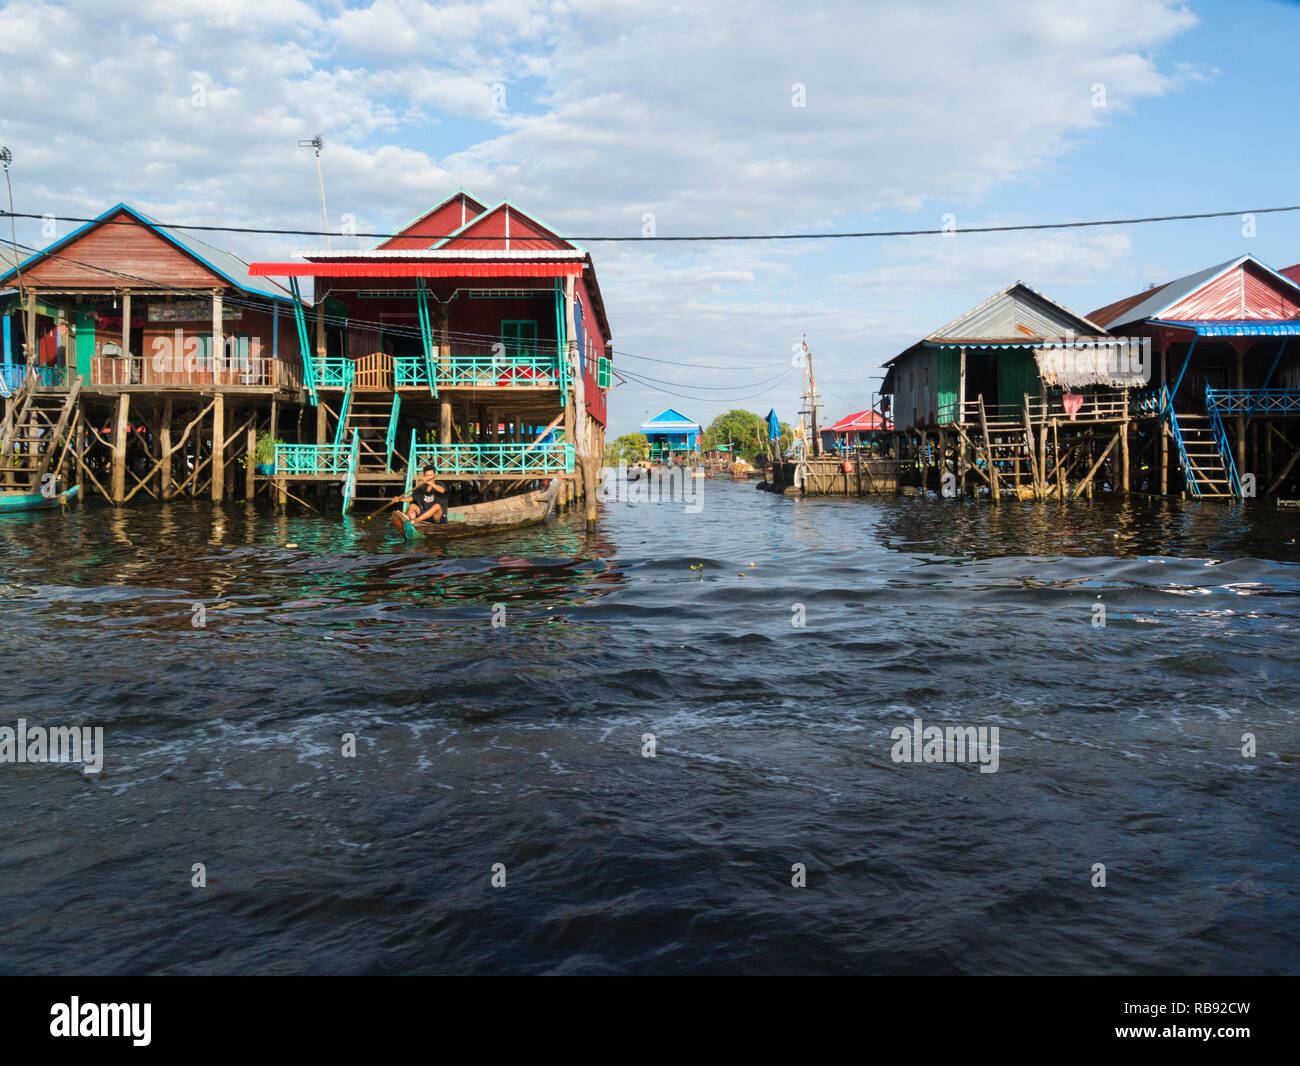 Stilted homes in Kampong Phluk floating village on Kampong Phluk RiverSiem Reap Cambodia Asia home to approximately 3000 predominately Khmer fishing p - Stock Image